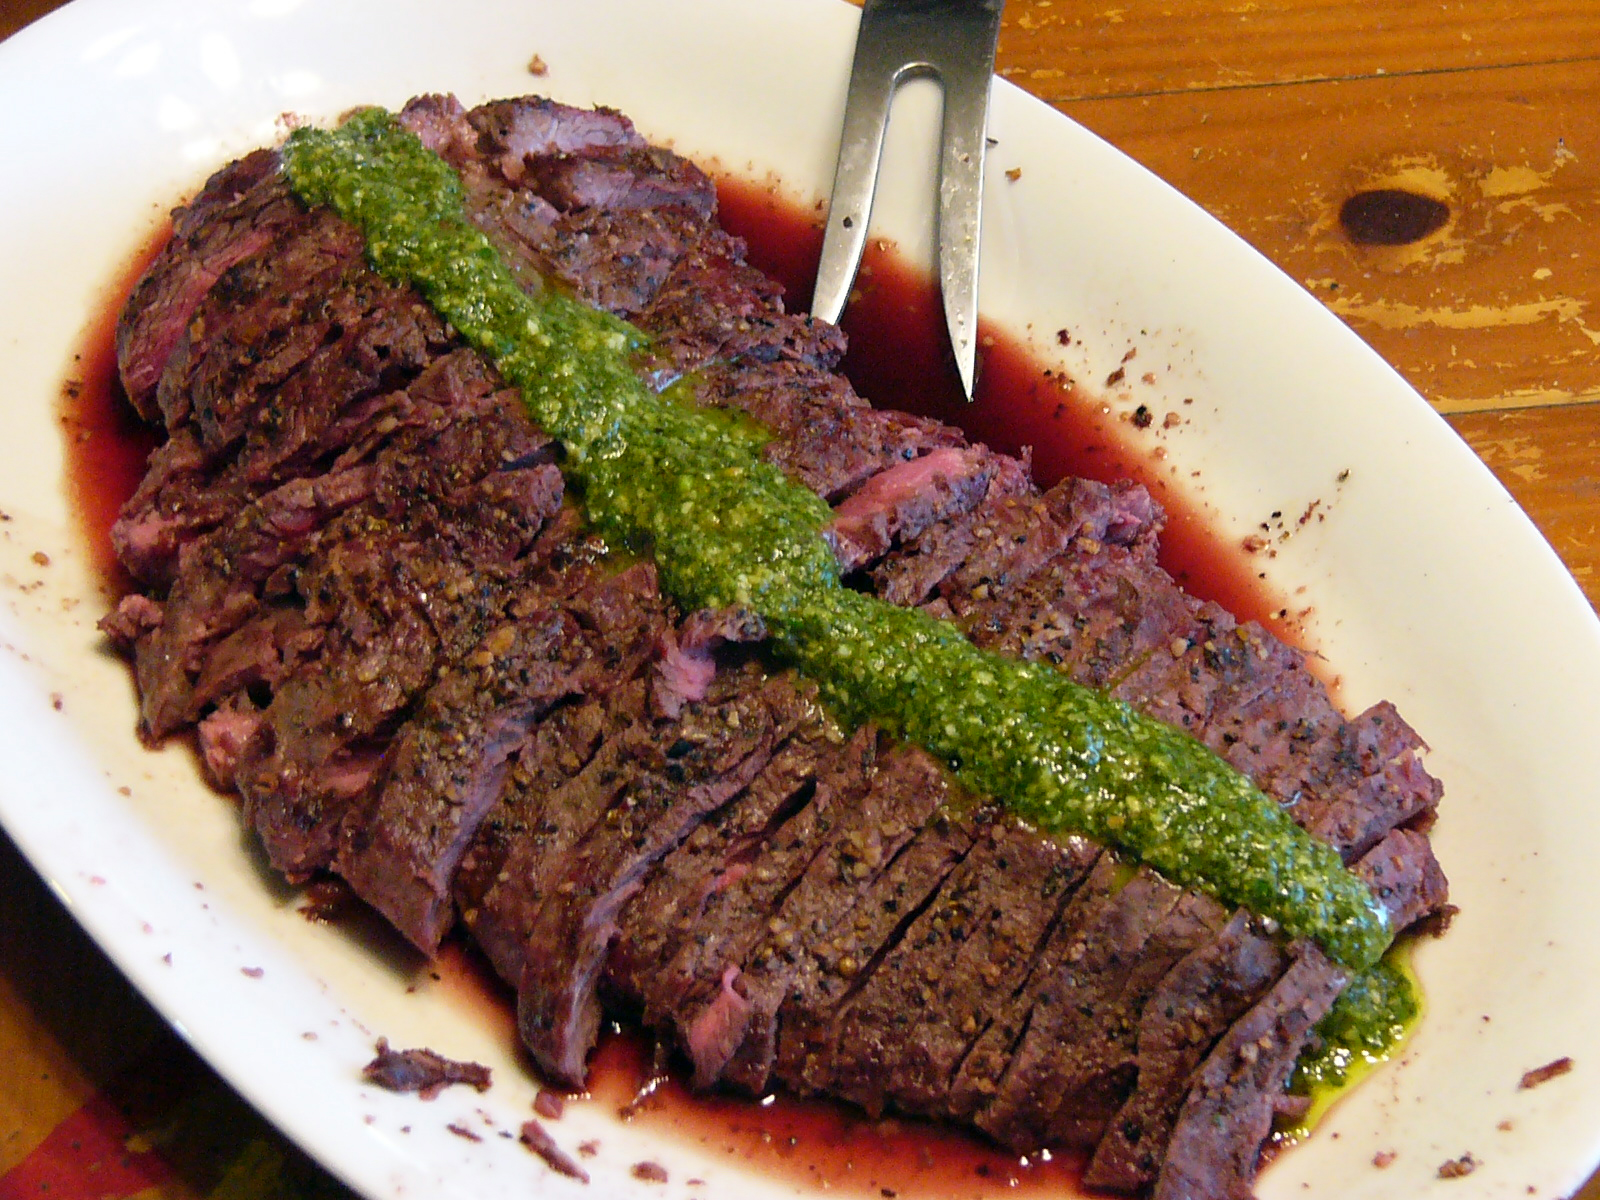 Grilled Flat Iron Steak with Chimichurri Sauce – Rosemarie's Kitchen